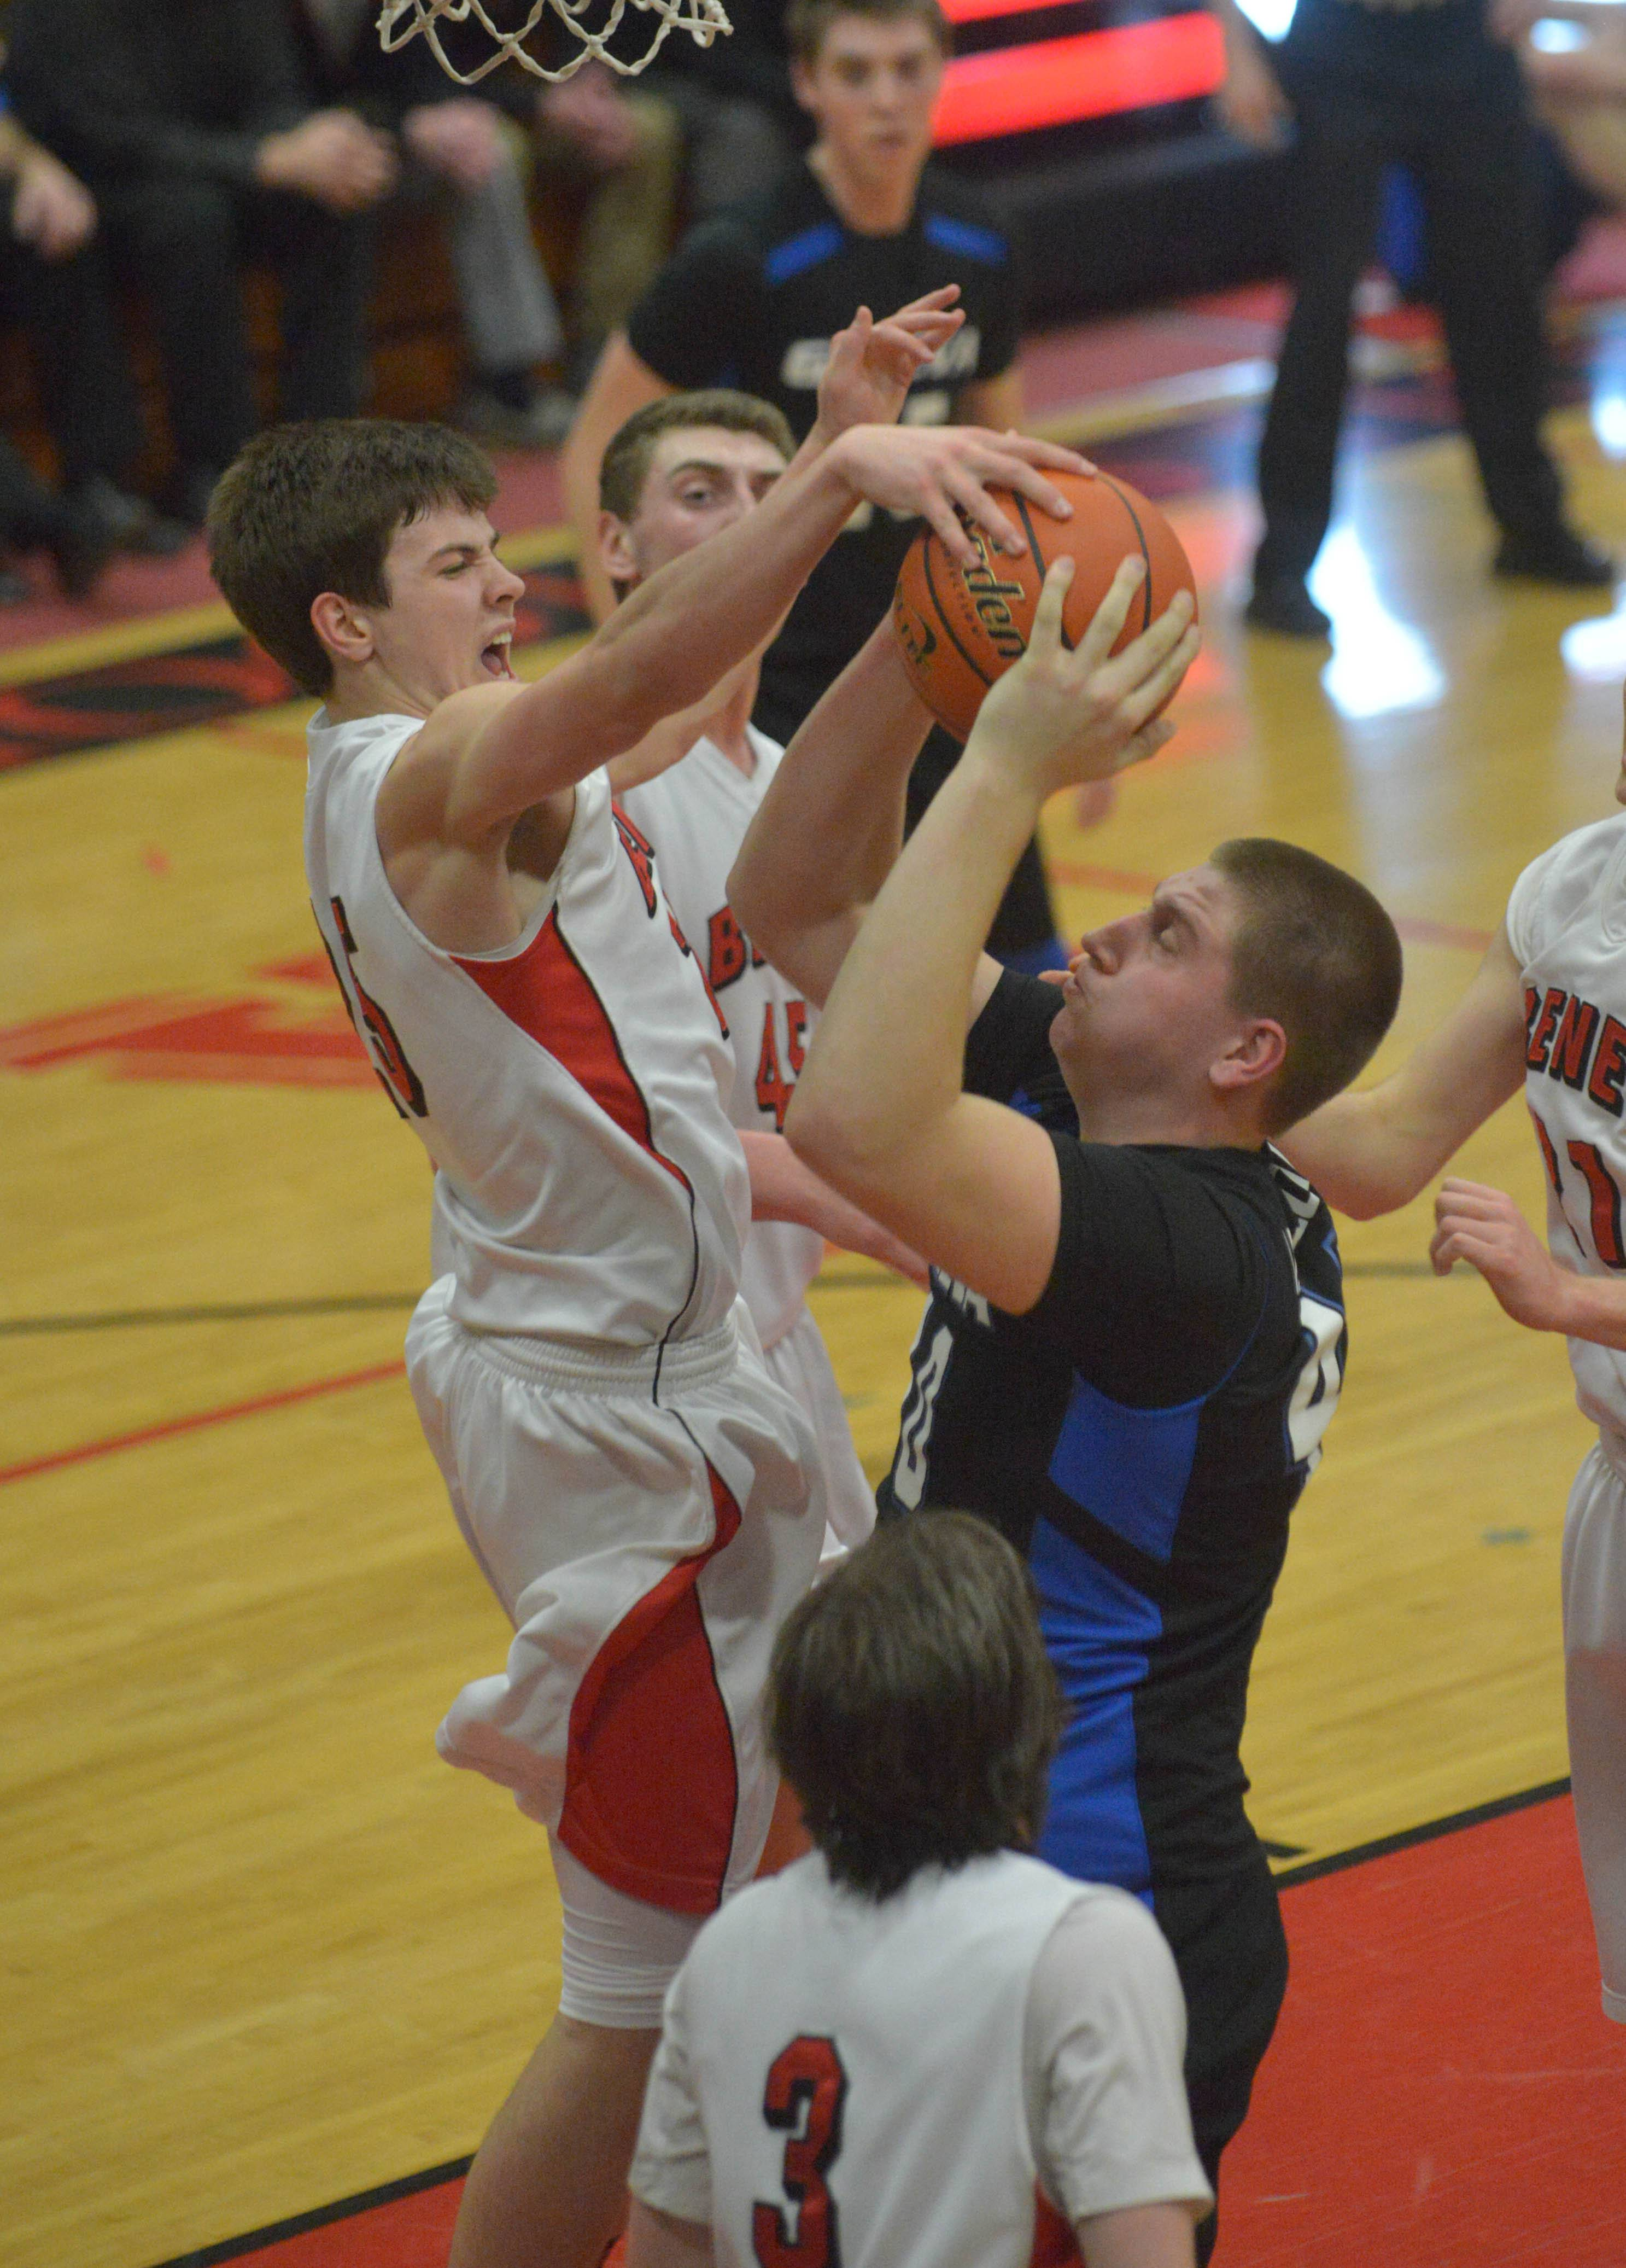 Liam Nelligan of Benet Academy blocks  shot from Loudon Vollbrecht of Geneva.